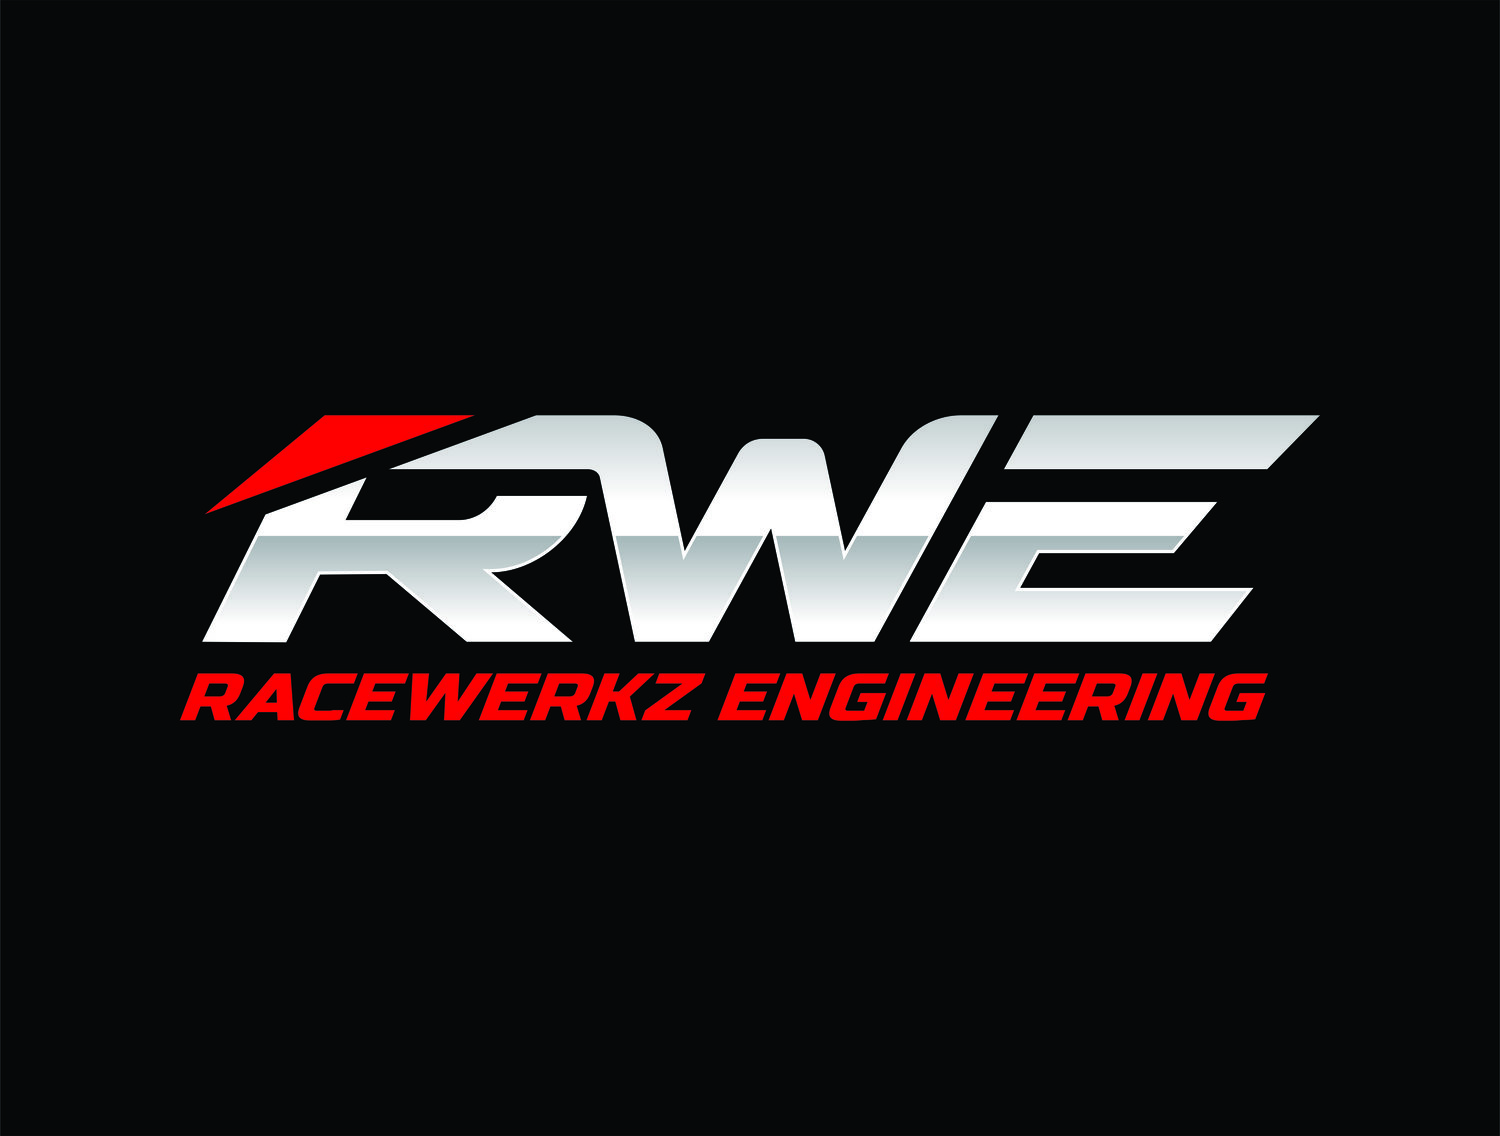 Racewerkz Engineering